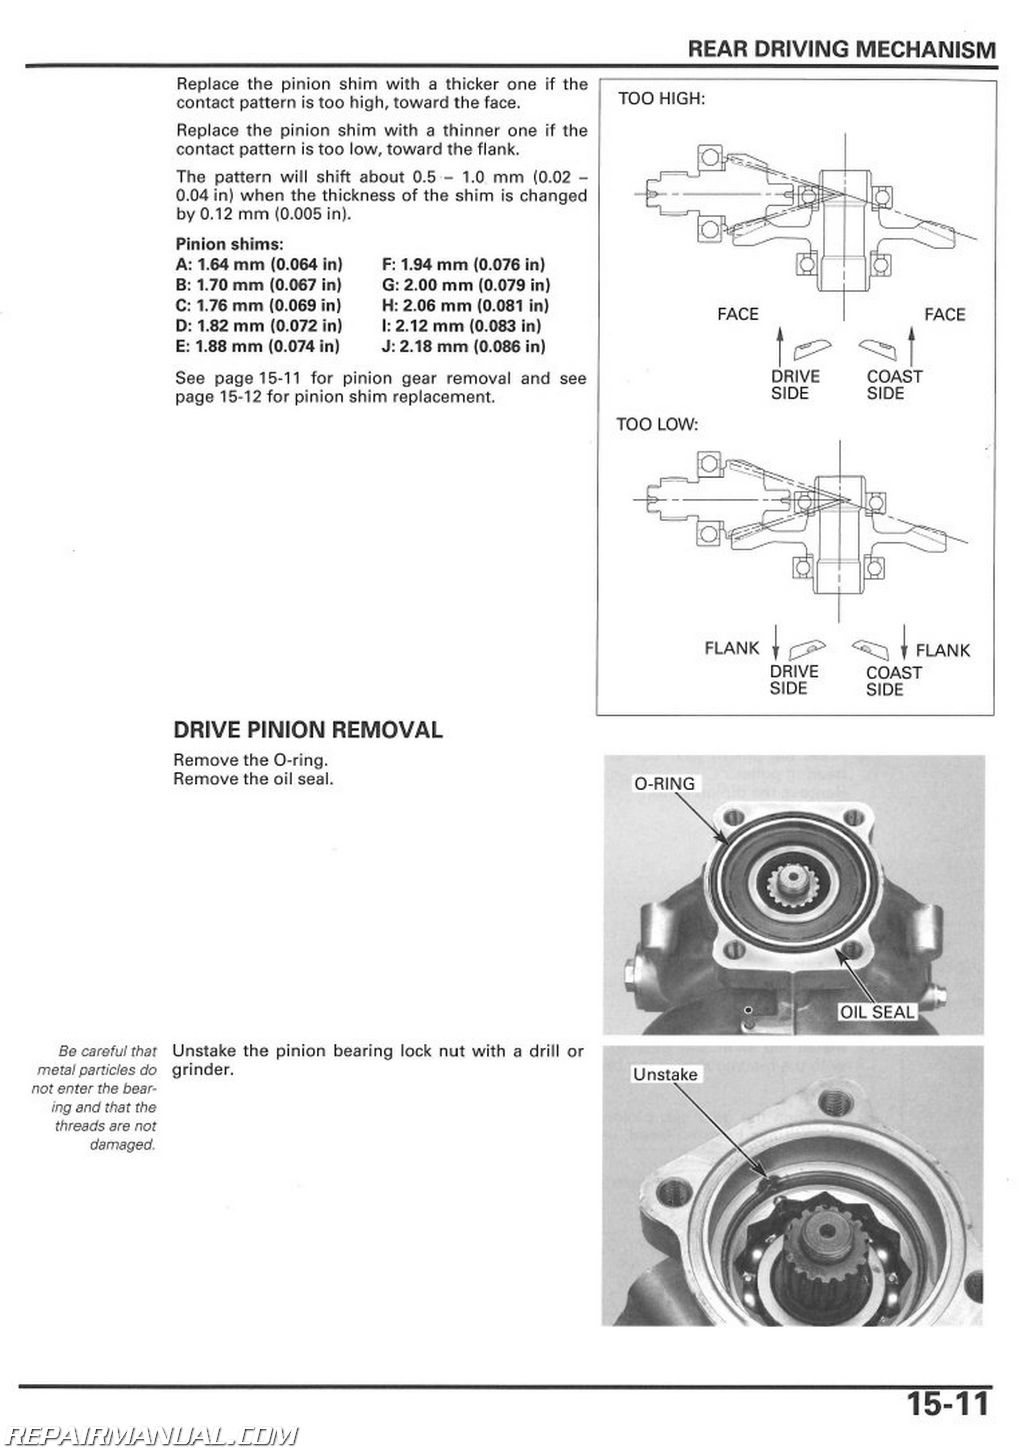 wiring diagram for 2005 honda recon 2005-2014 honda trx250te tm recon service manual #2